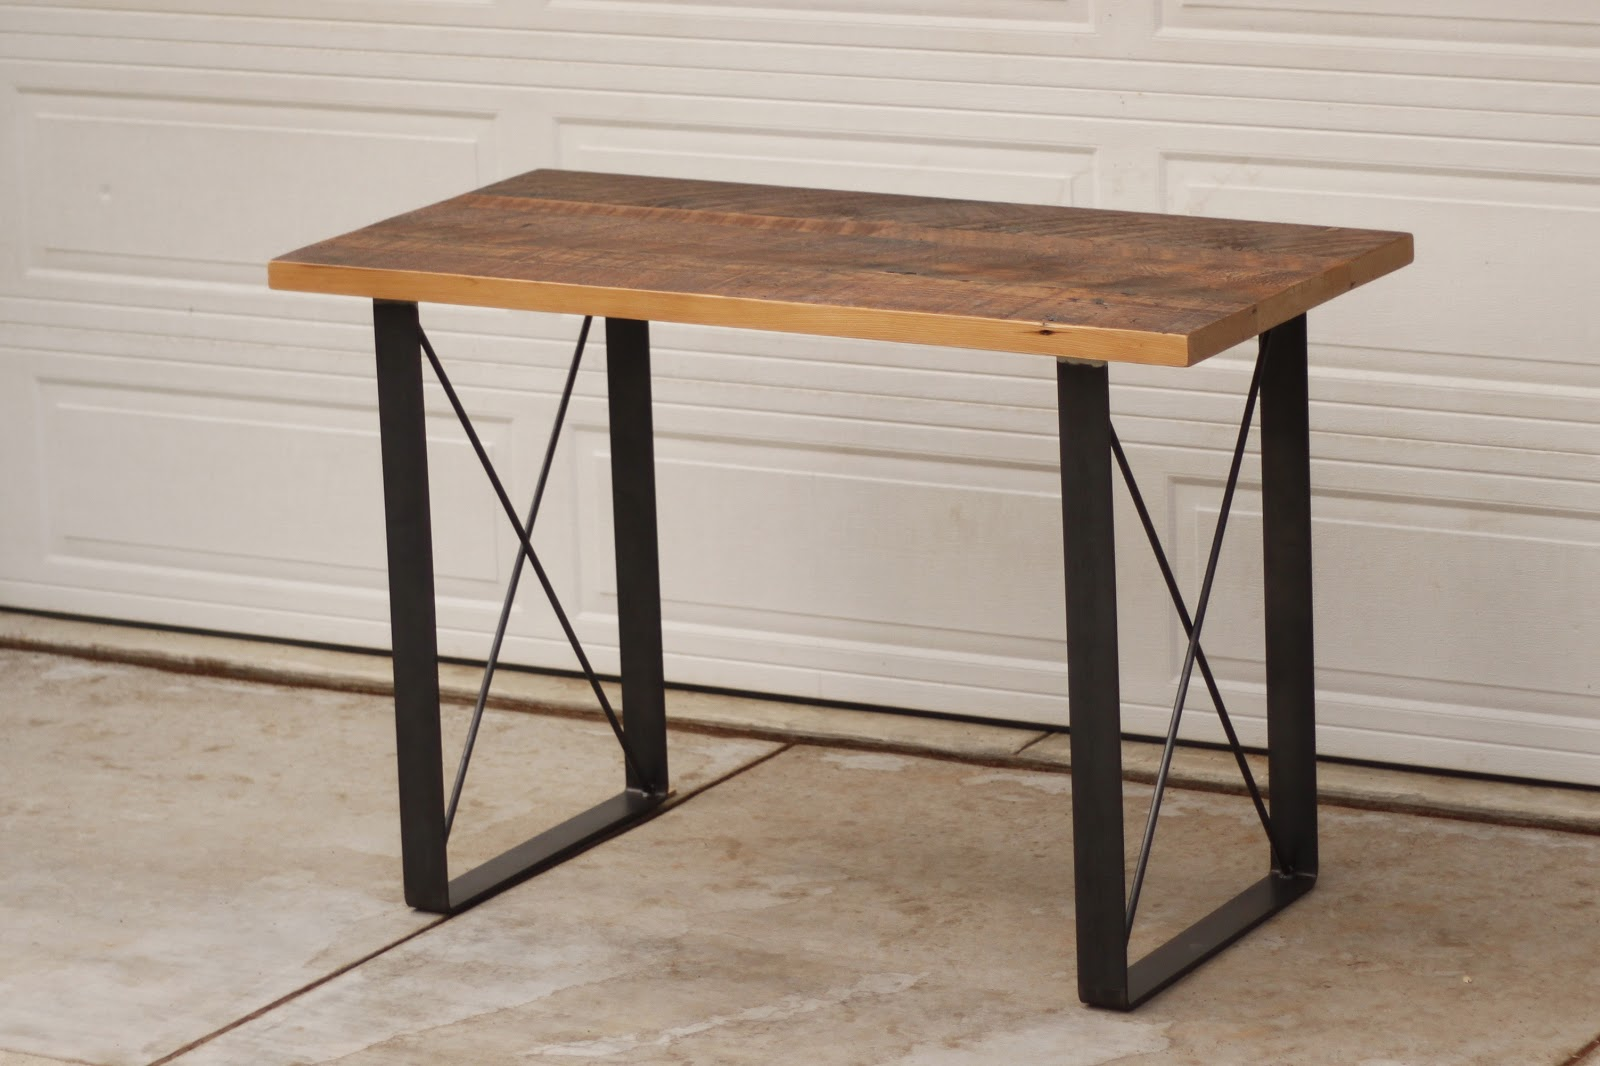 Arbor Exchange | Reclaimed Wood Furniture: Stand-up Desk w/ Metal